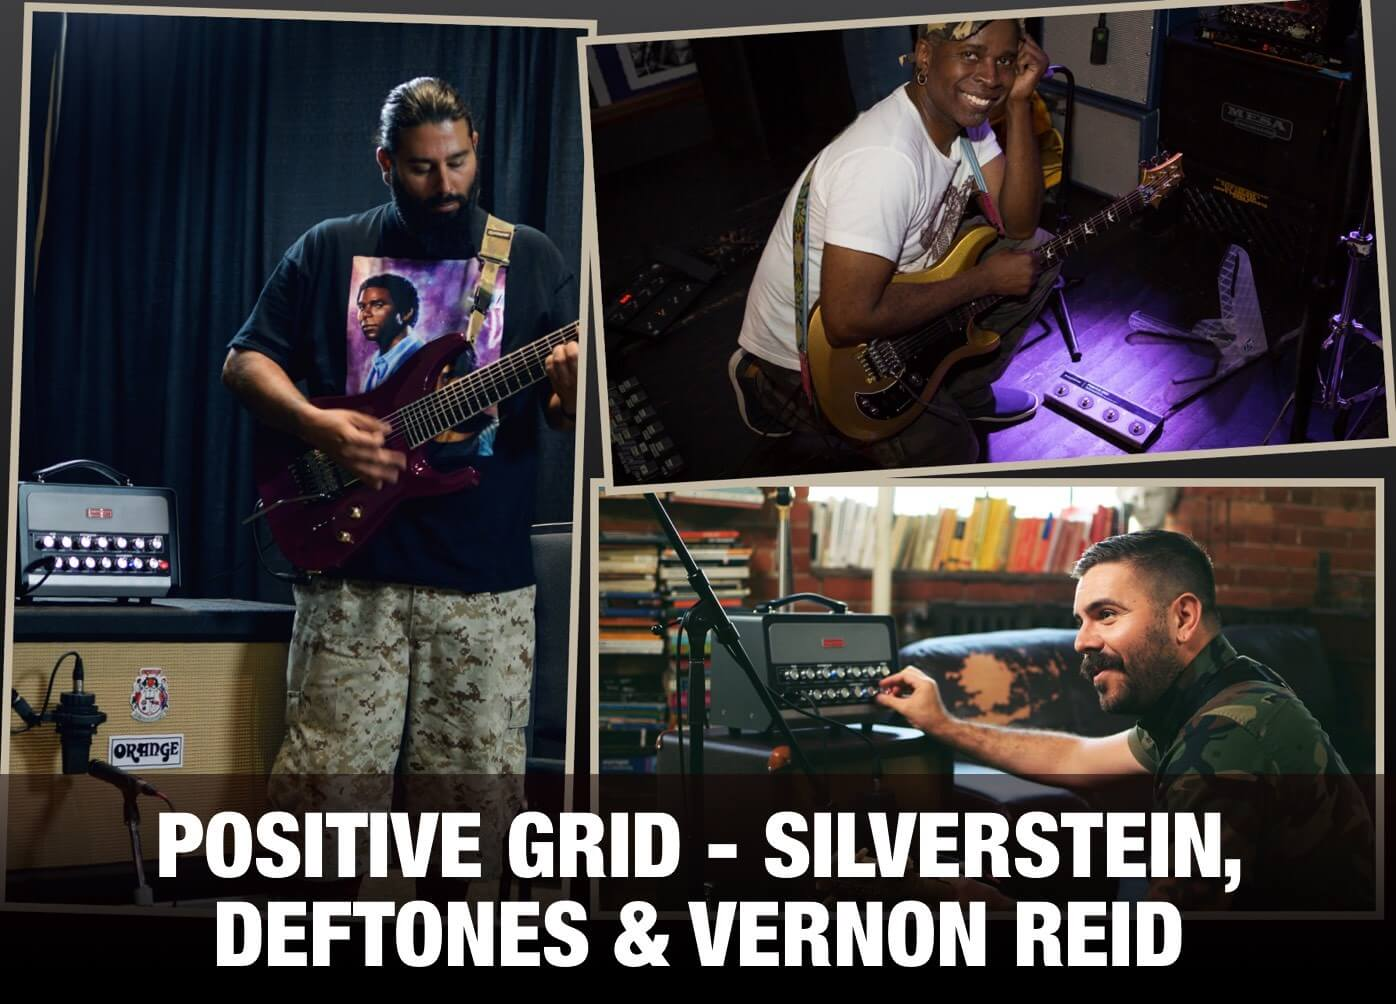 positive grid artist content silverstein deftones vernon reid. Black Bedroom Furniture Sets. Home Design Ideas